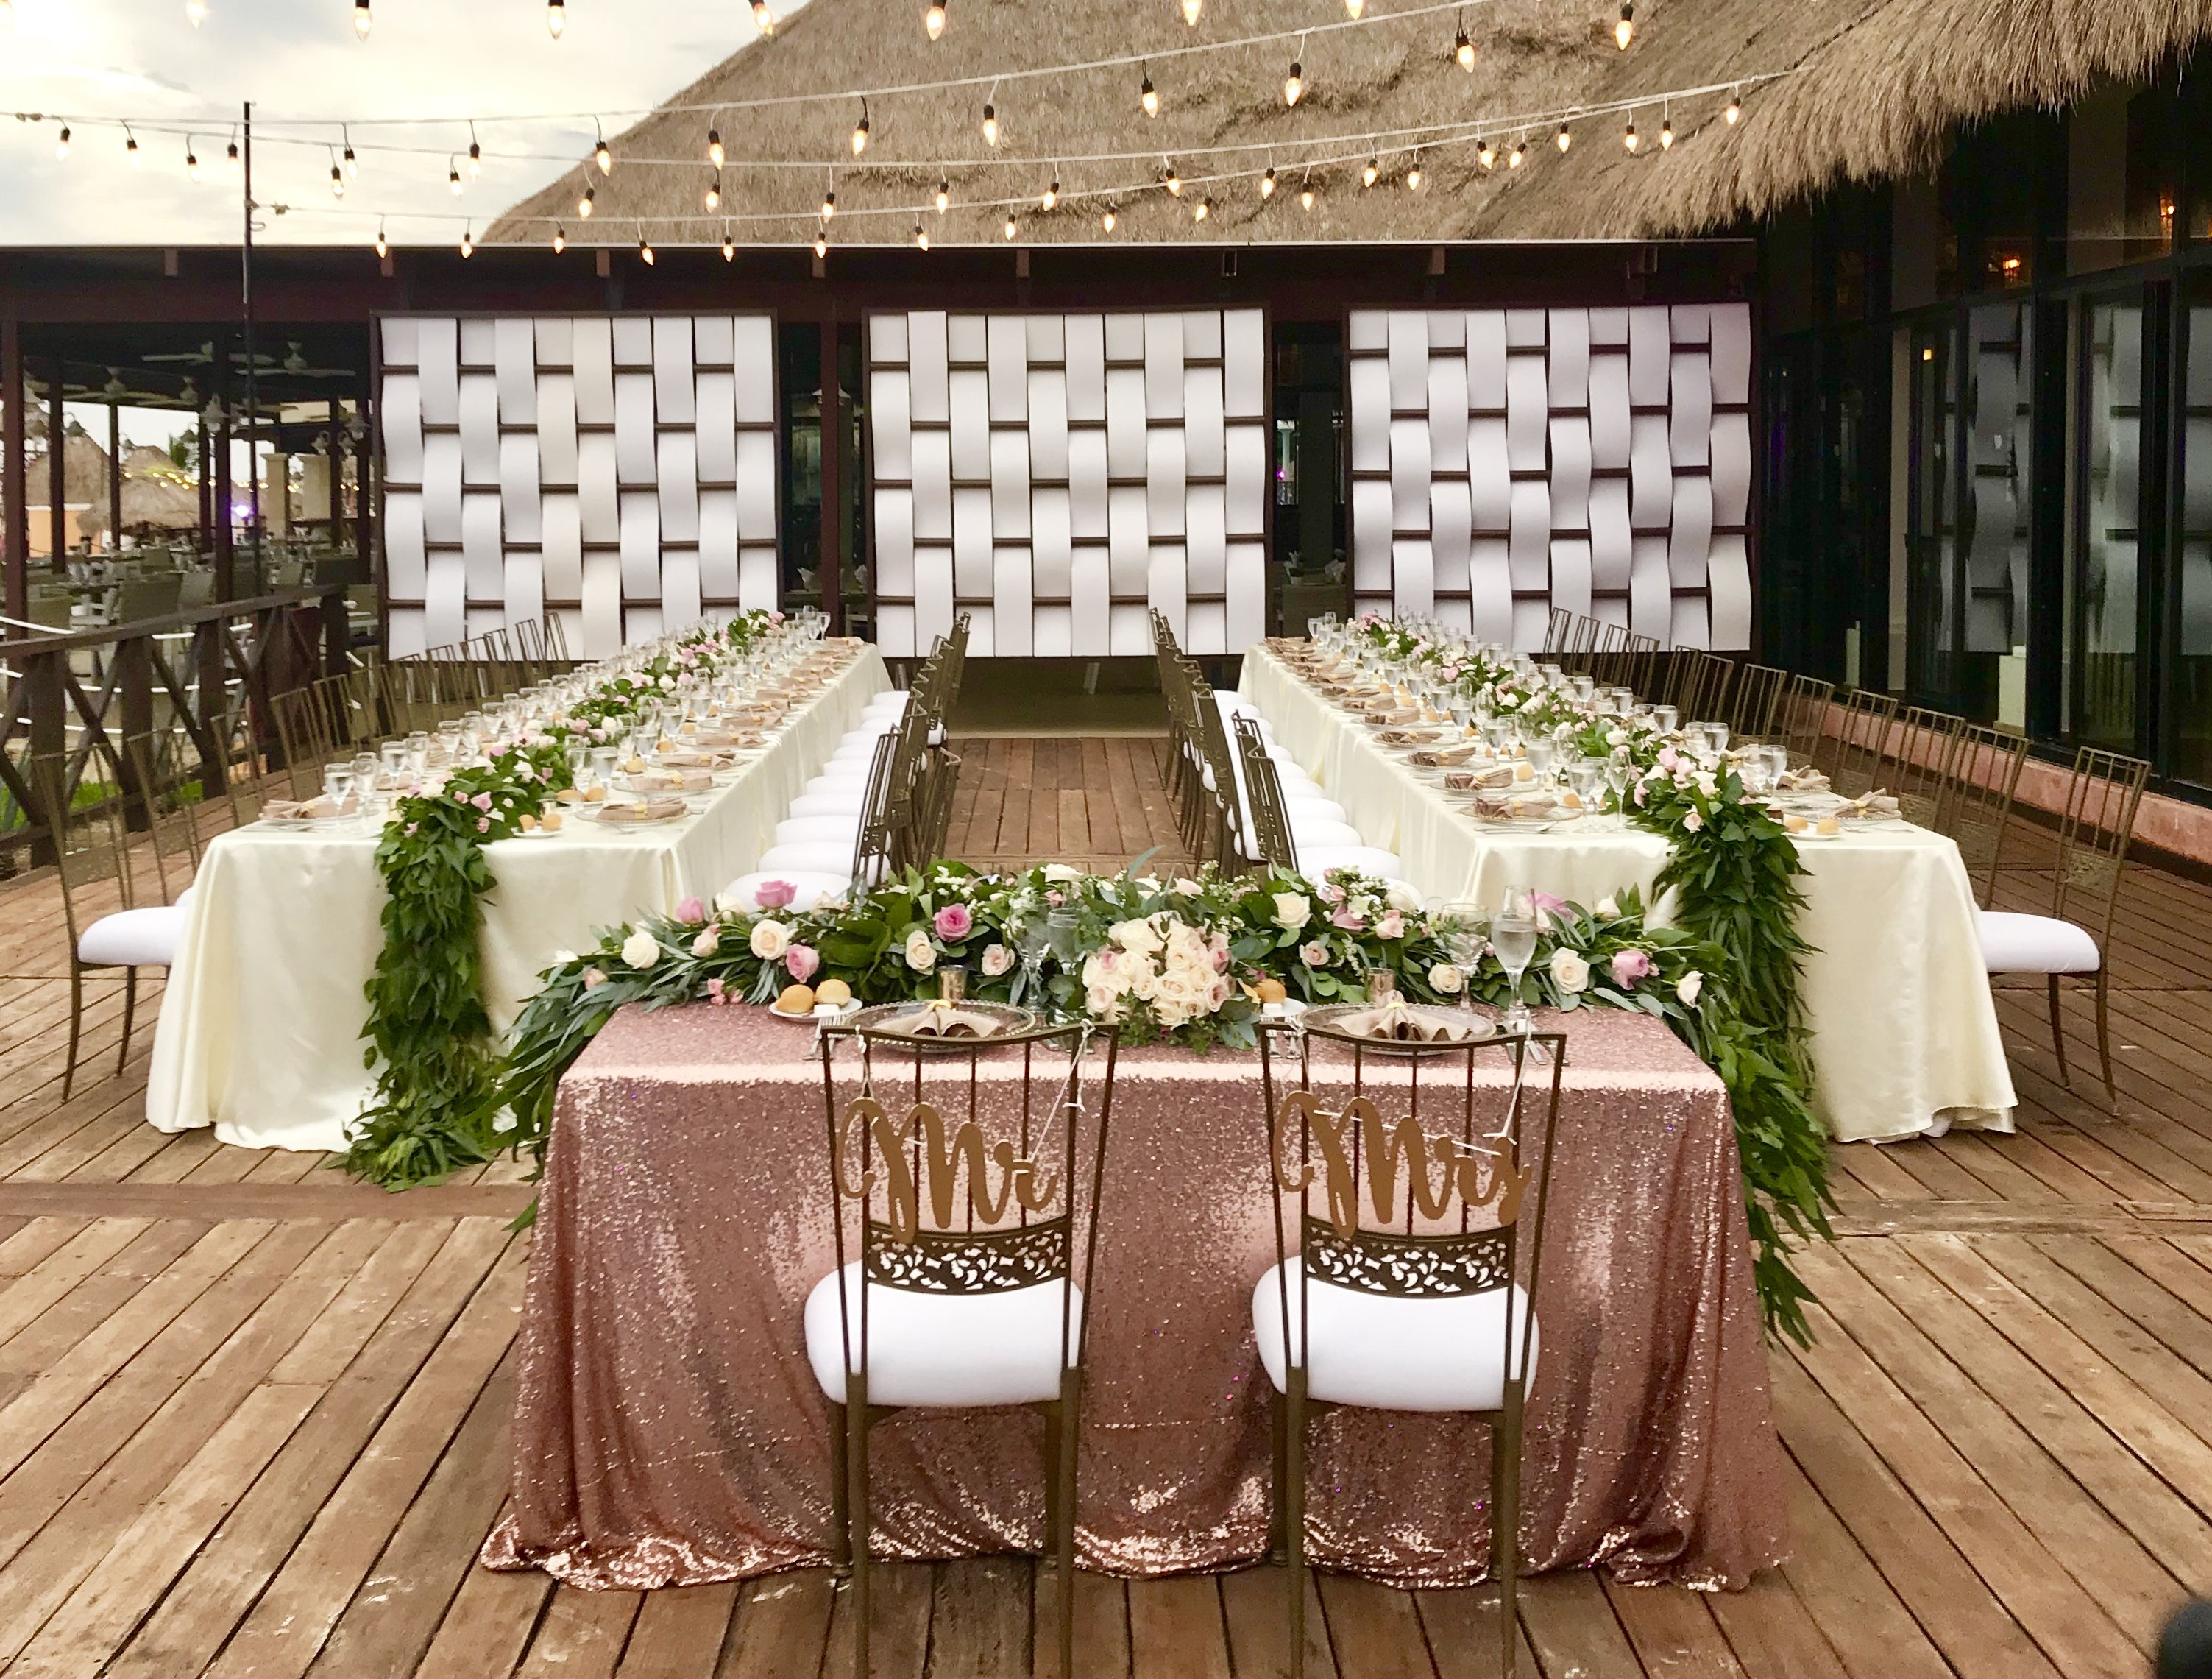 Sweetheart Table And 2 Imperial Tables At The Tequila Terrace Perfect Setup For 60 People Wedding Wedding Reception Tables Wedding Table Settings Wedding